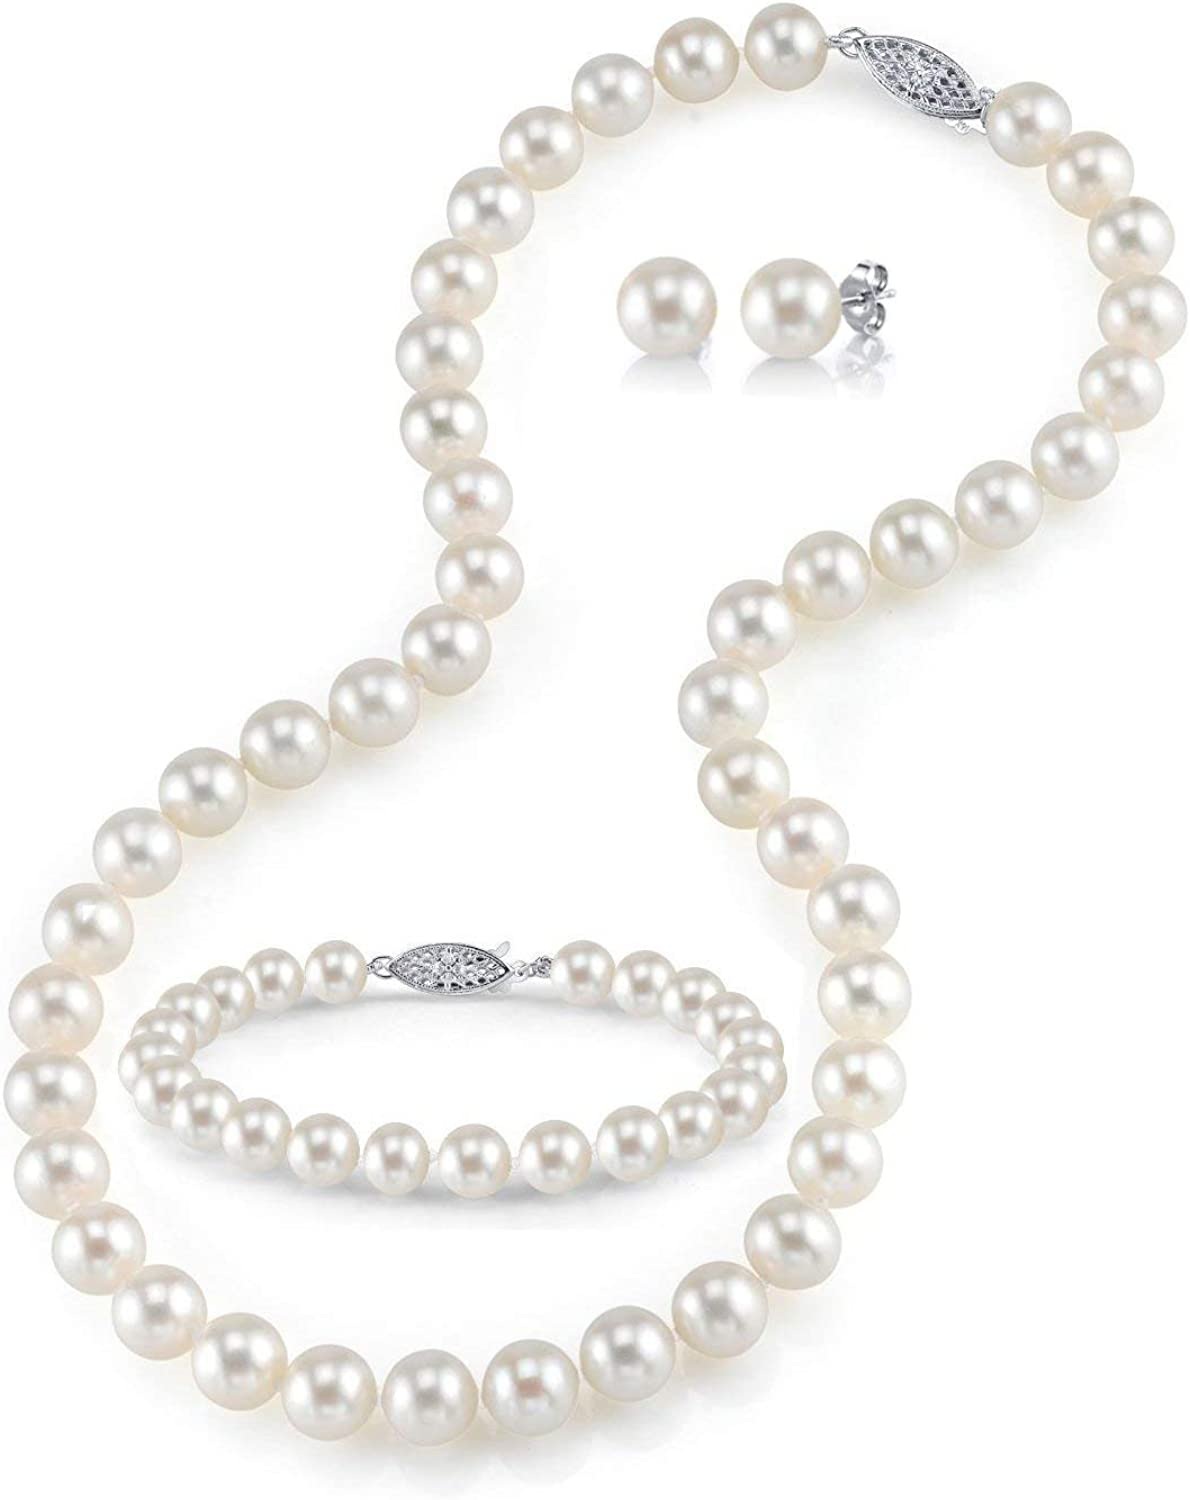 Crystals and Silver Necklace Set Freshwater Cultured Pearls